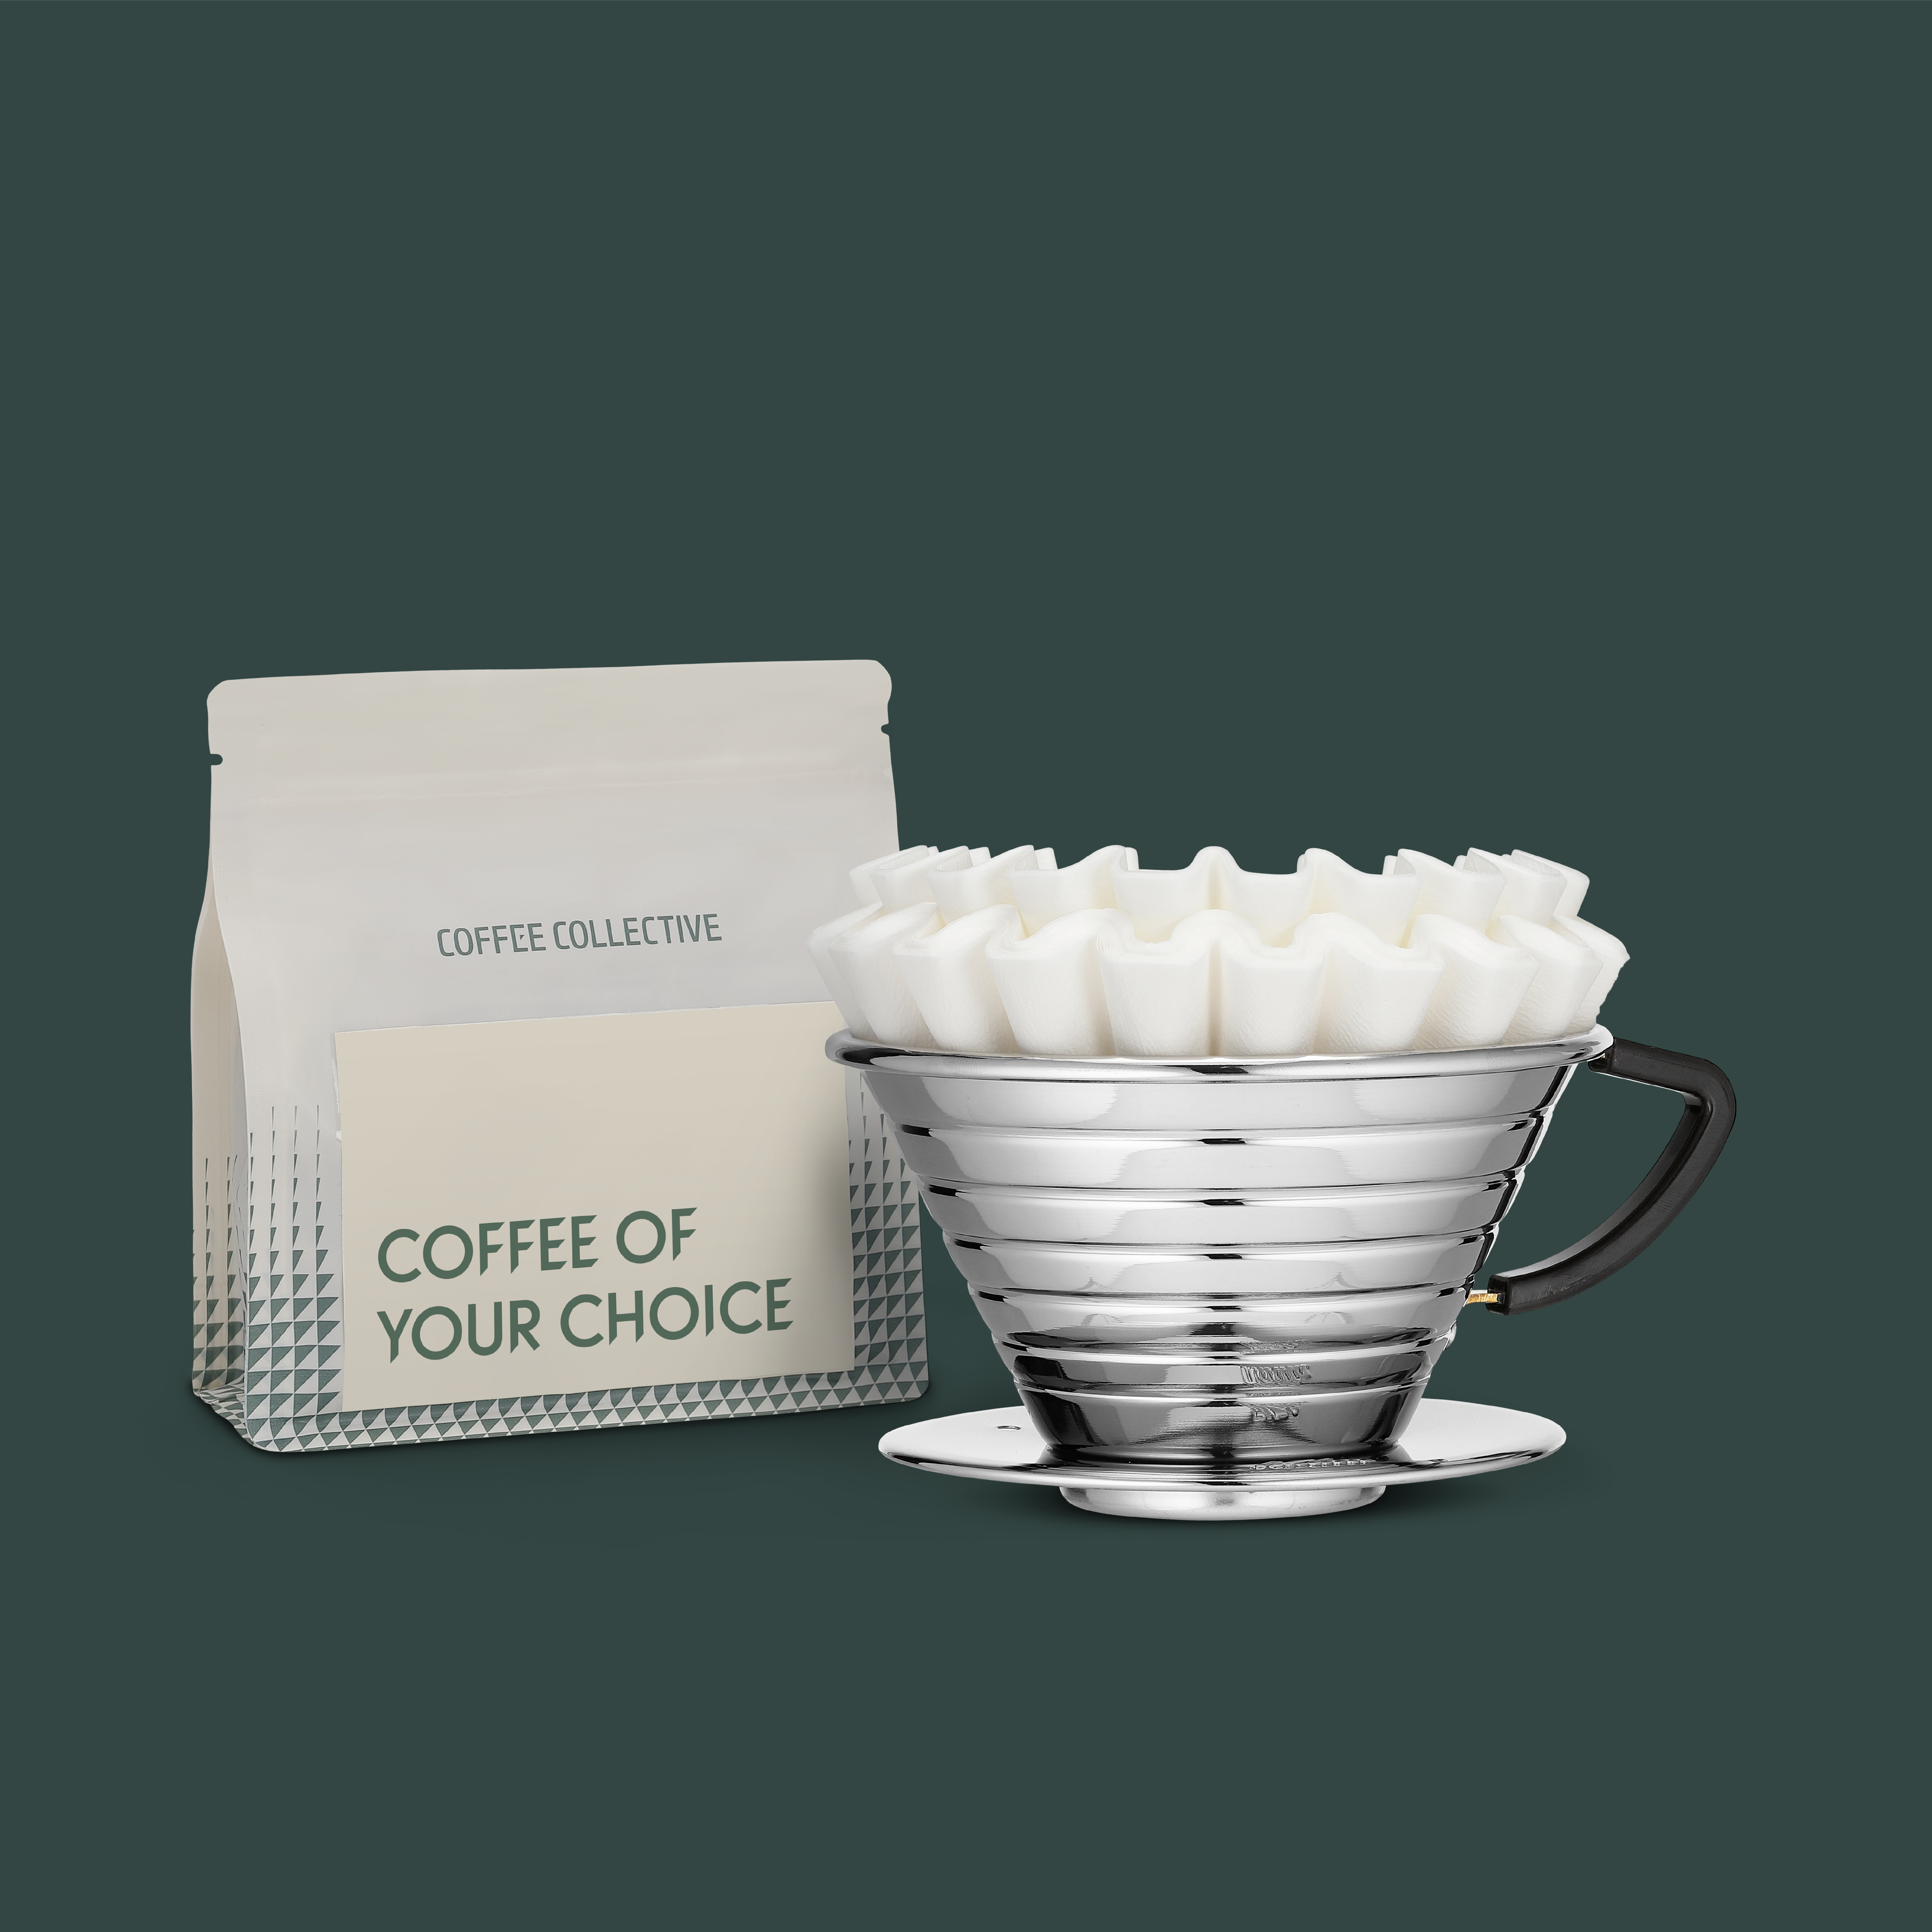 Remember a bag of optional beans for the ultimate coffee dripper